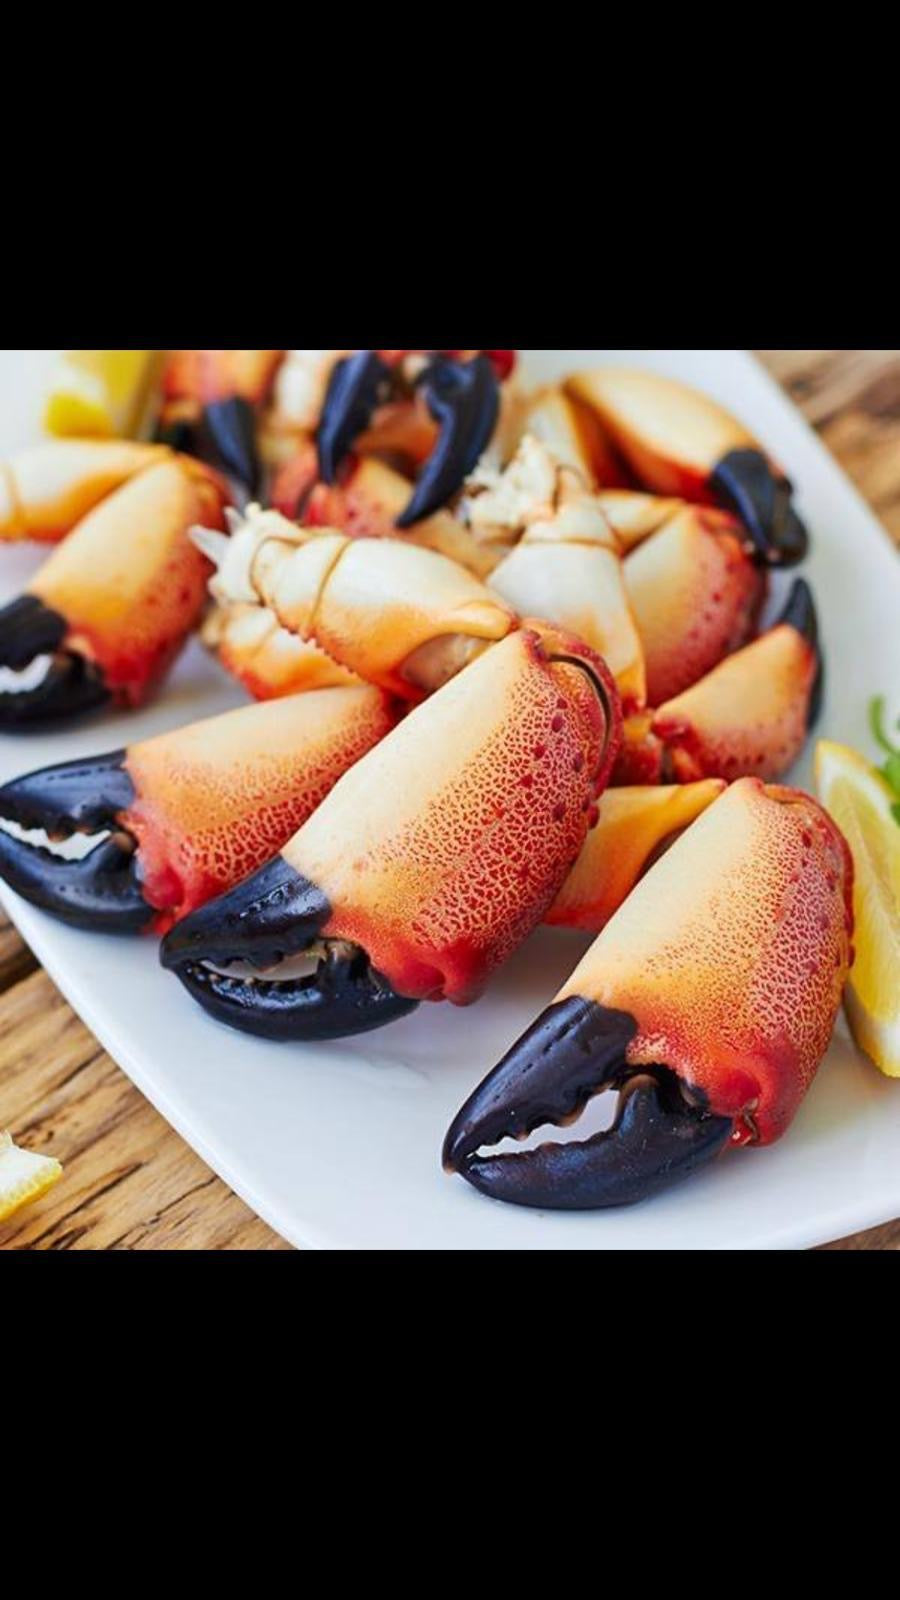 2kg of Crab Claws